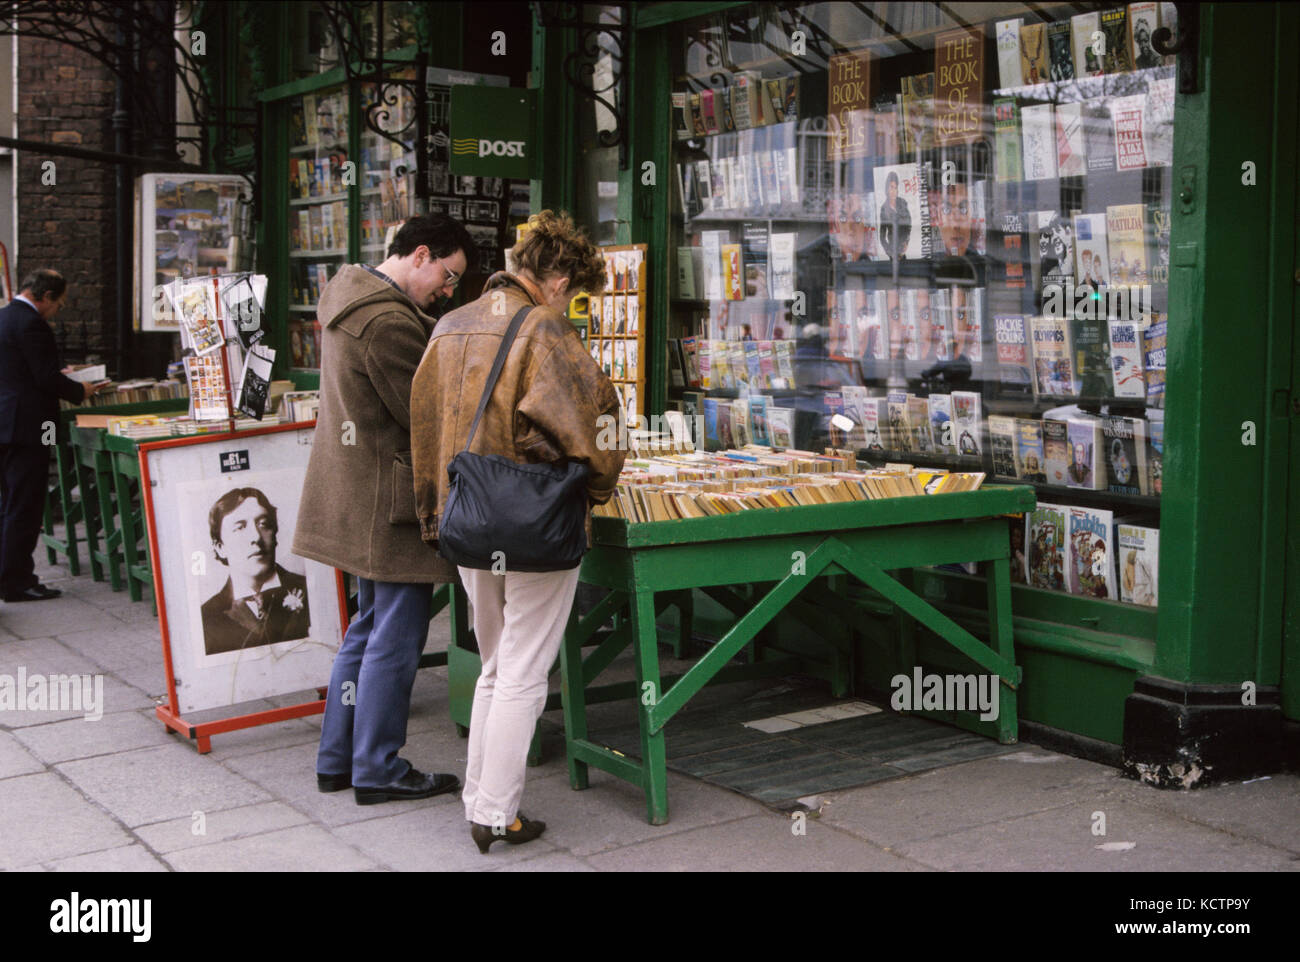 BOOKSTORE London with a couple looking among paperback outside the shop 2009 - Stock Image